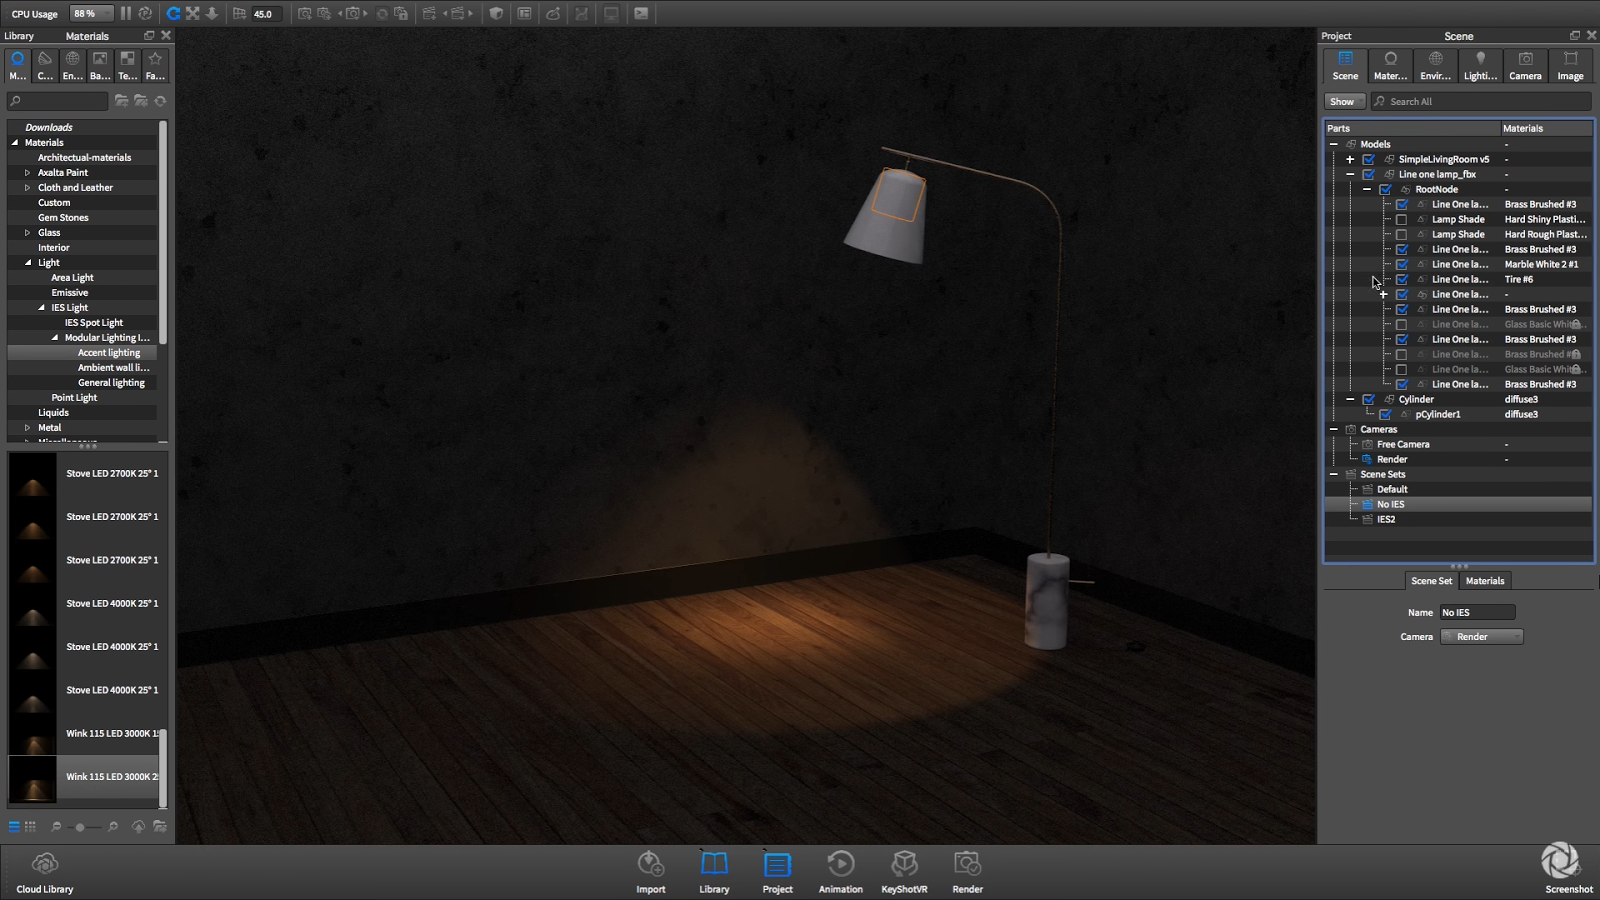 More dynamic and realistic light with IES Profile in Keyshot